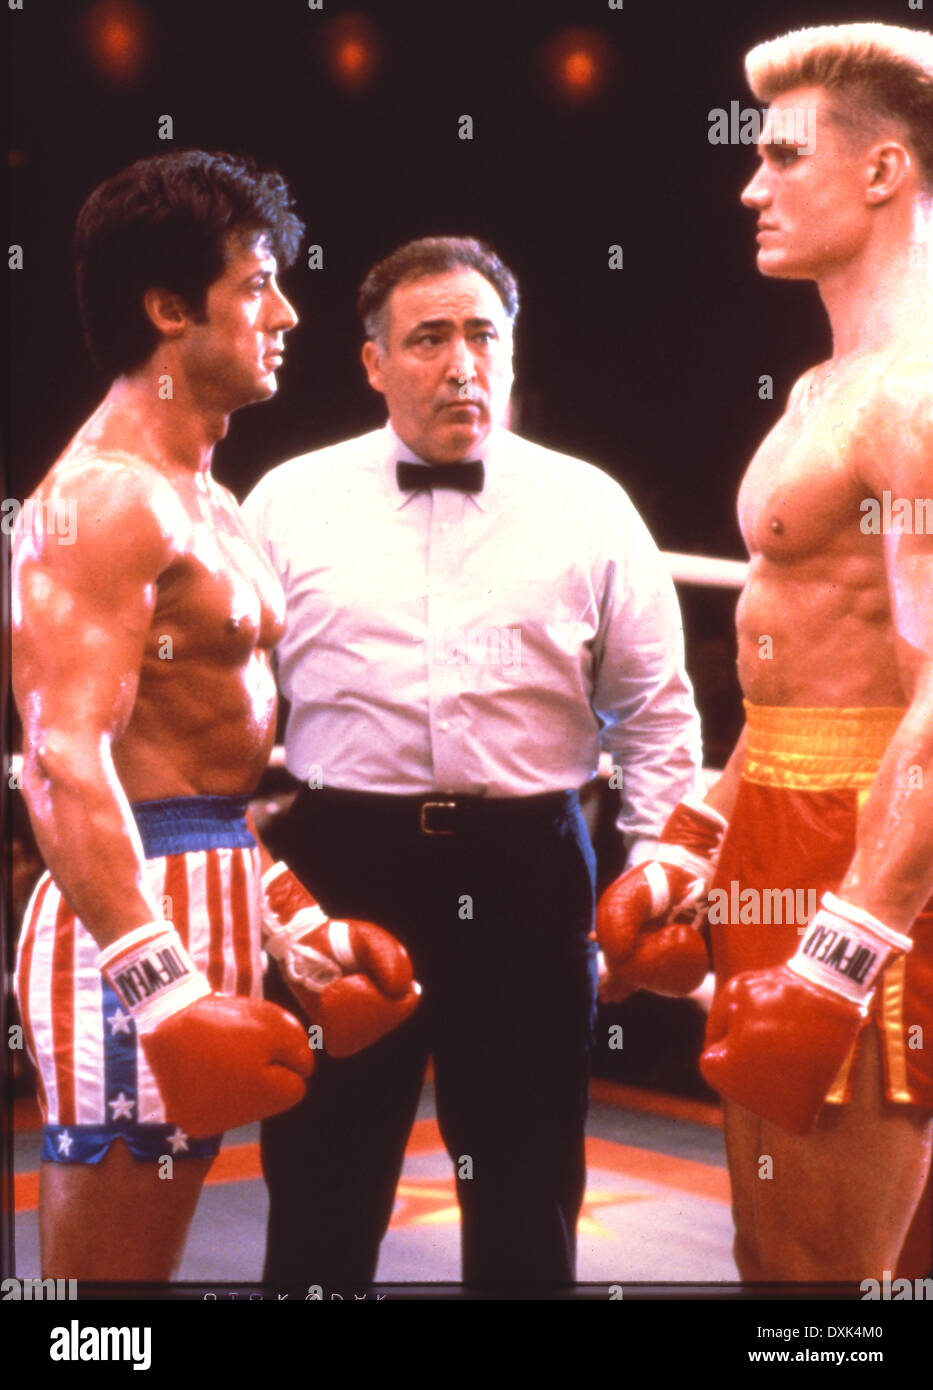 ROCKY IV (US1985) SYLVESTER STALLONE, DOLPH LUNDGREN PICTURE - Stock Image